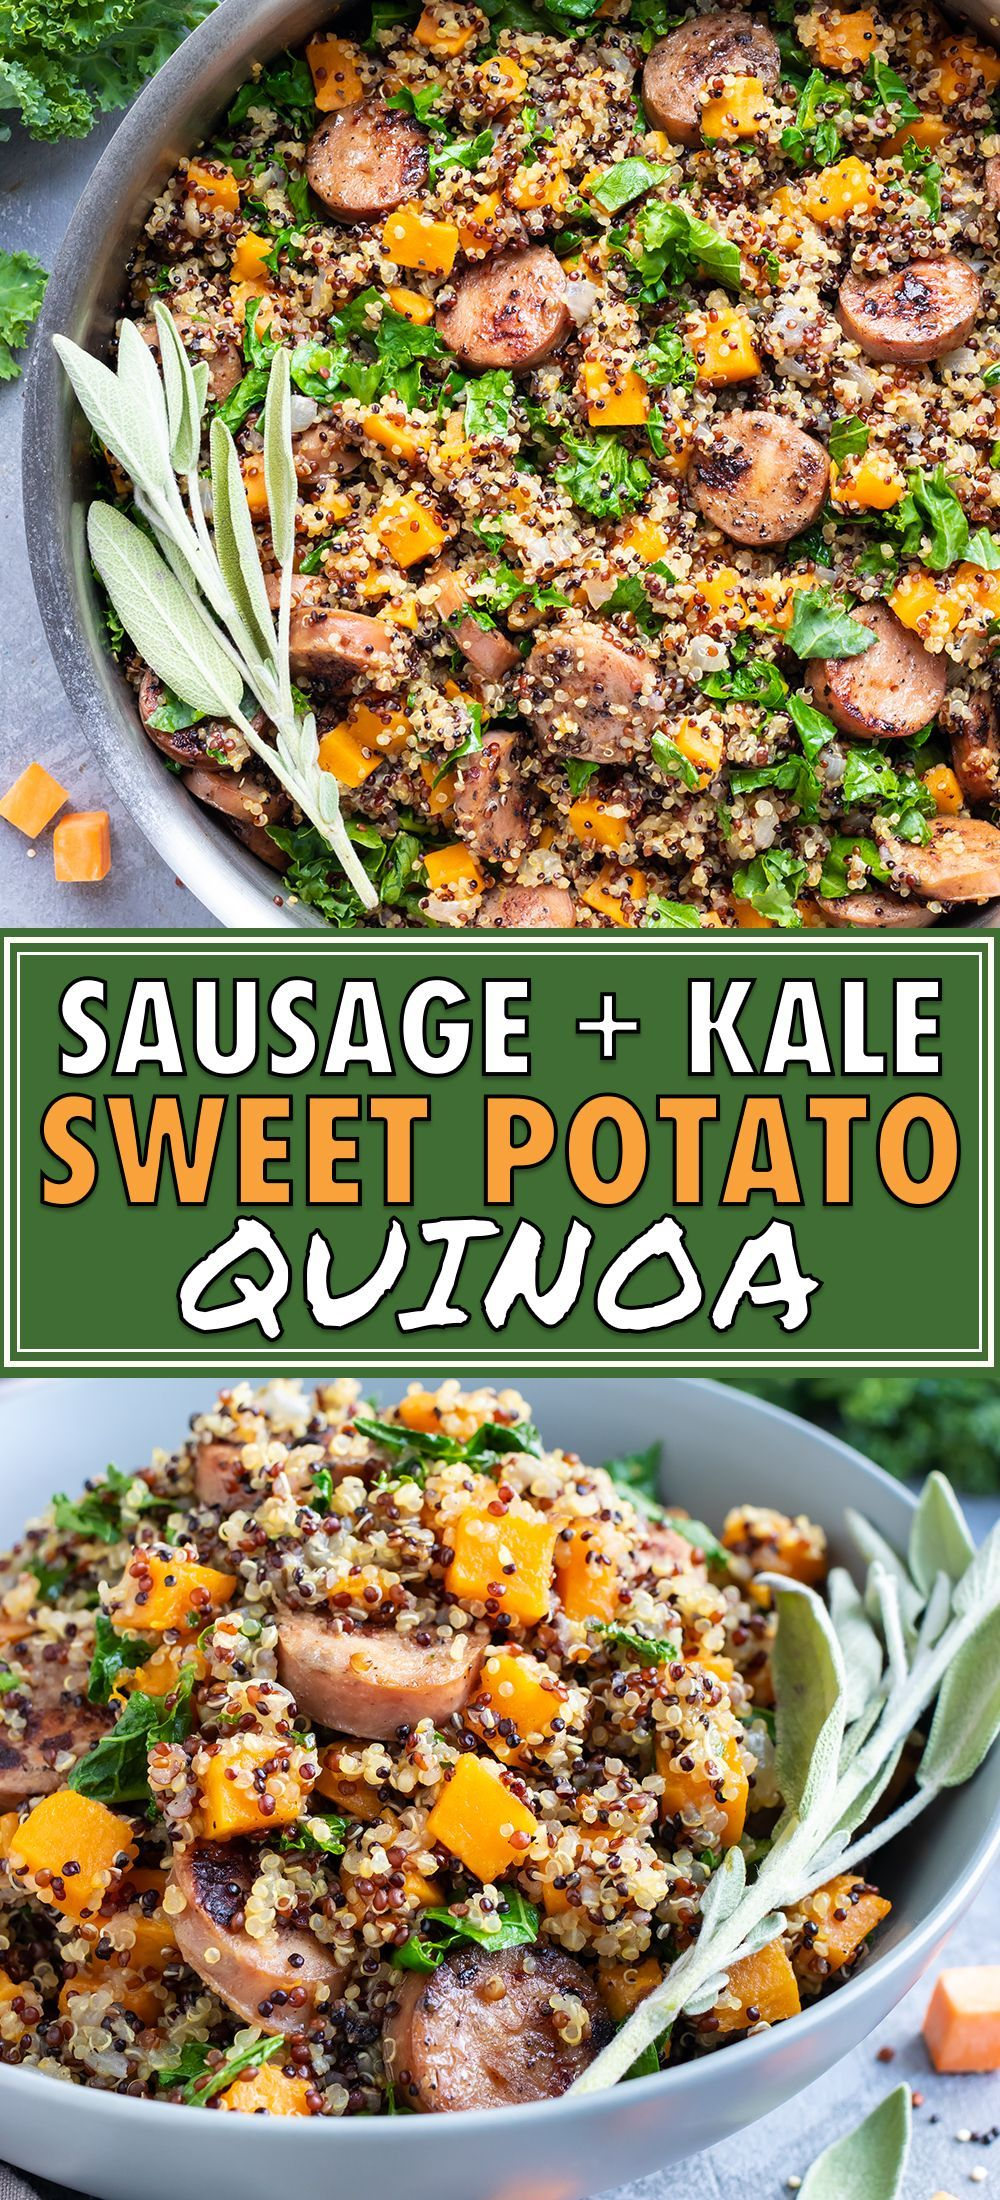 Sausage, Kale & Sweet Potato Quinoa Bowl Sweet potatoes, chicken apple sausage, and kale combine to